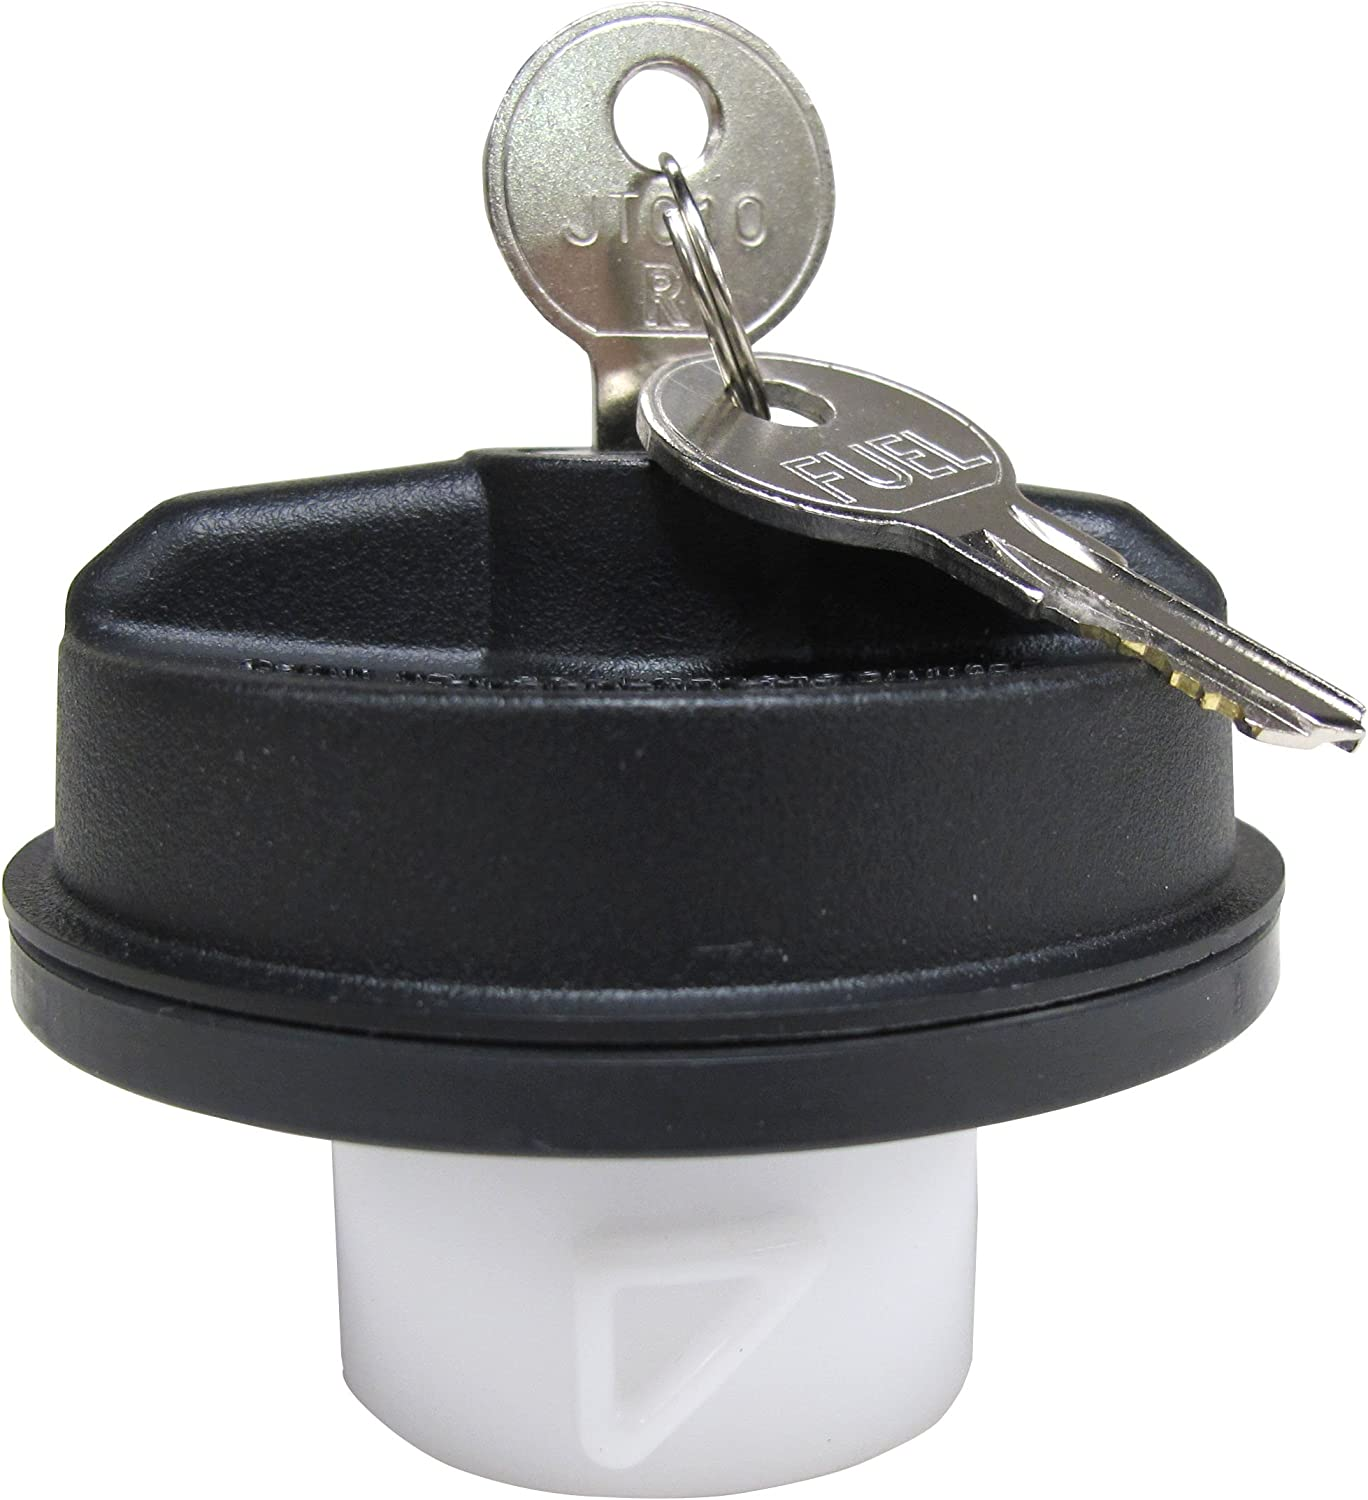 10524 LOCKING FUEL CAP STANT MFG CO